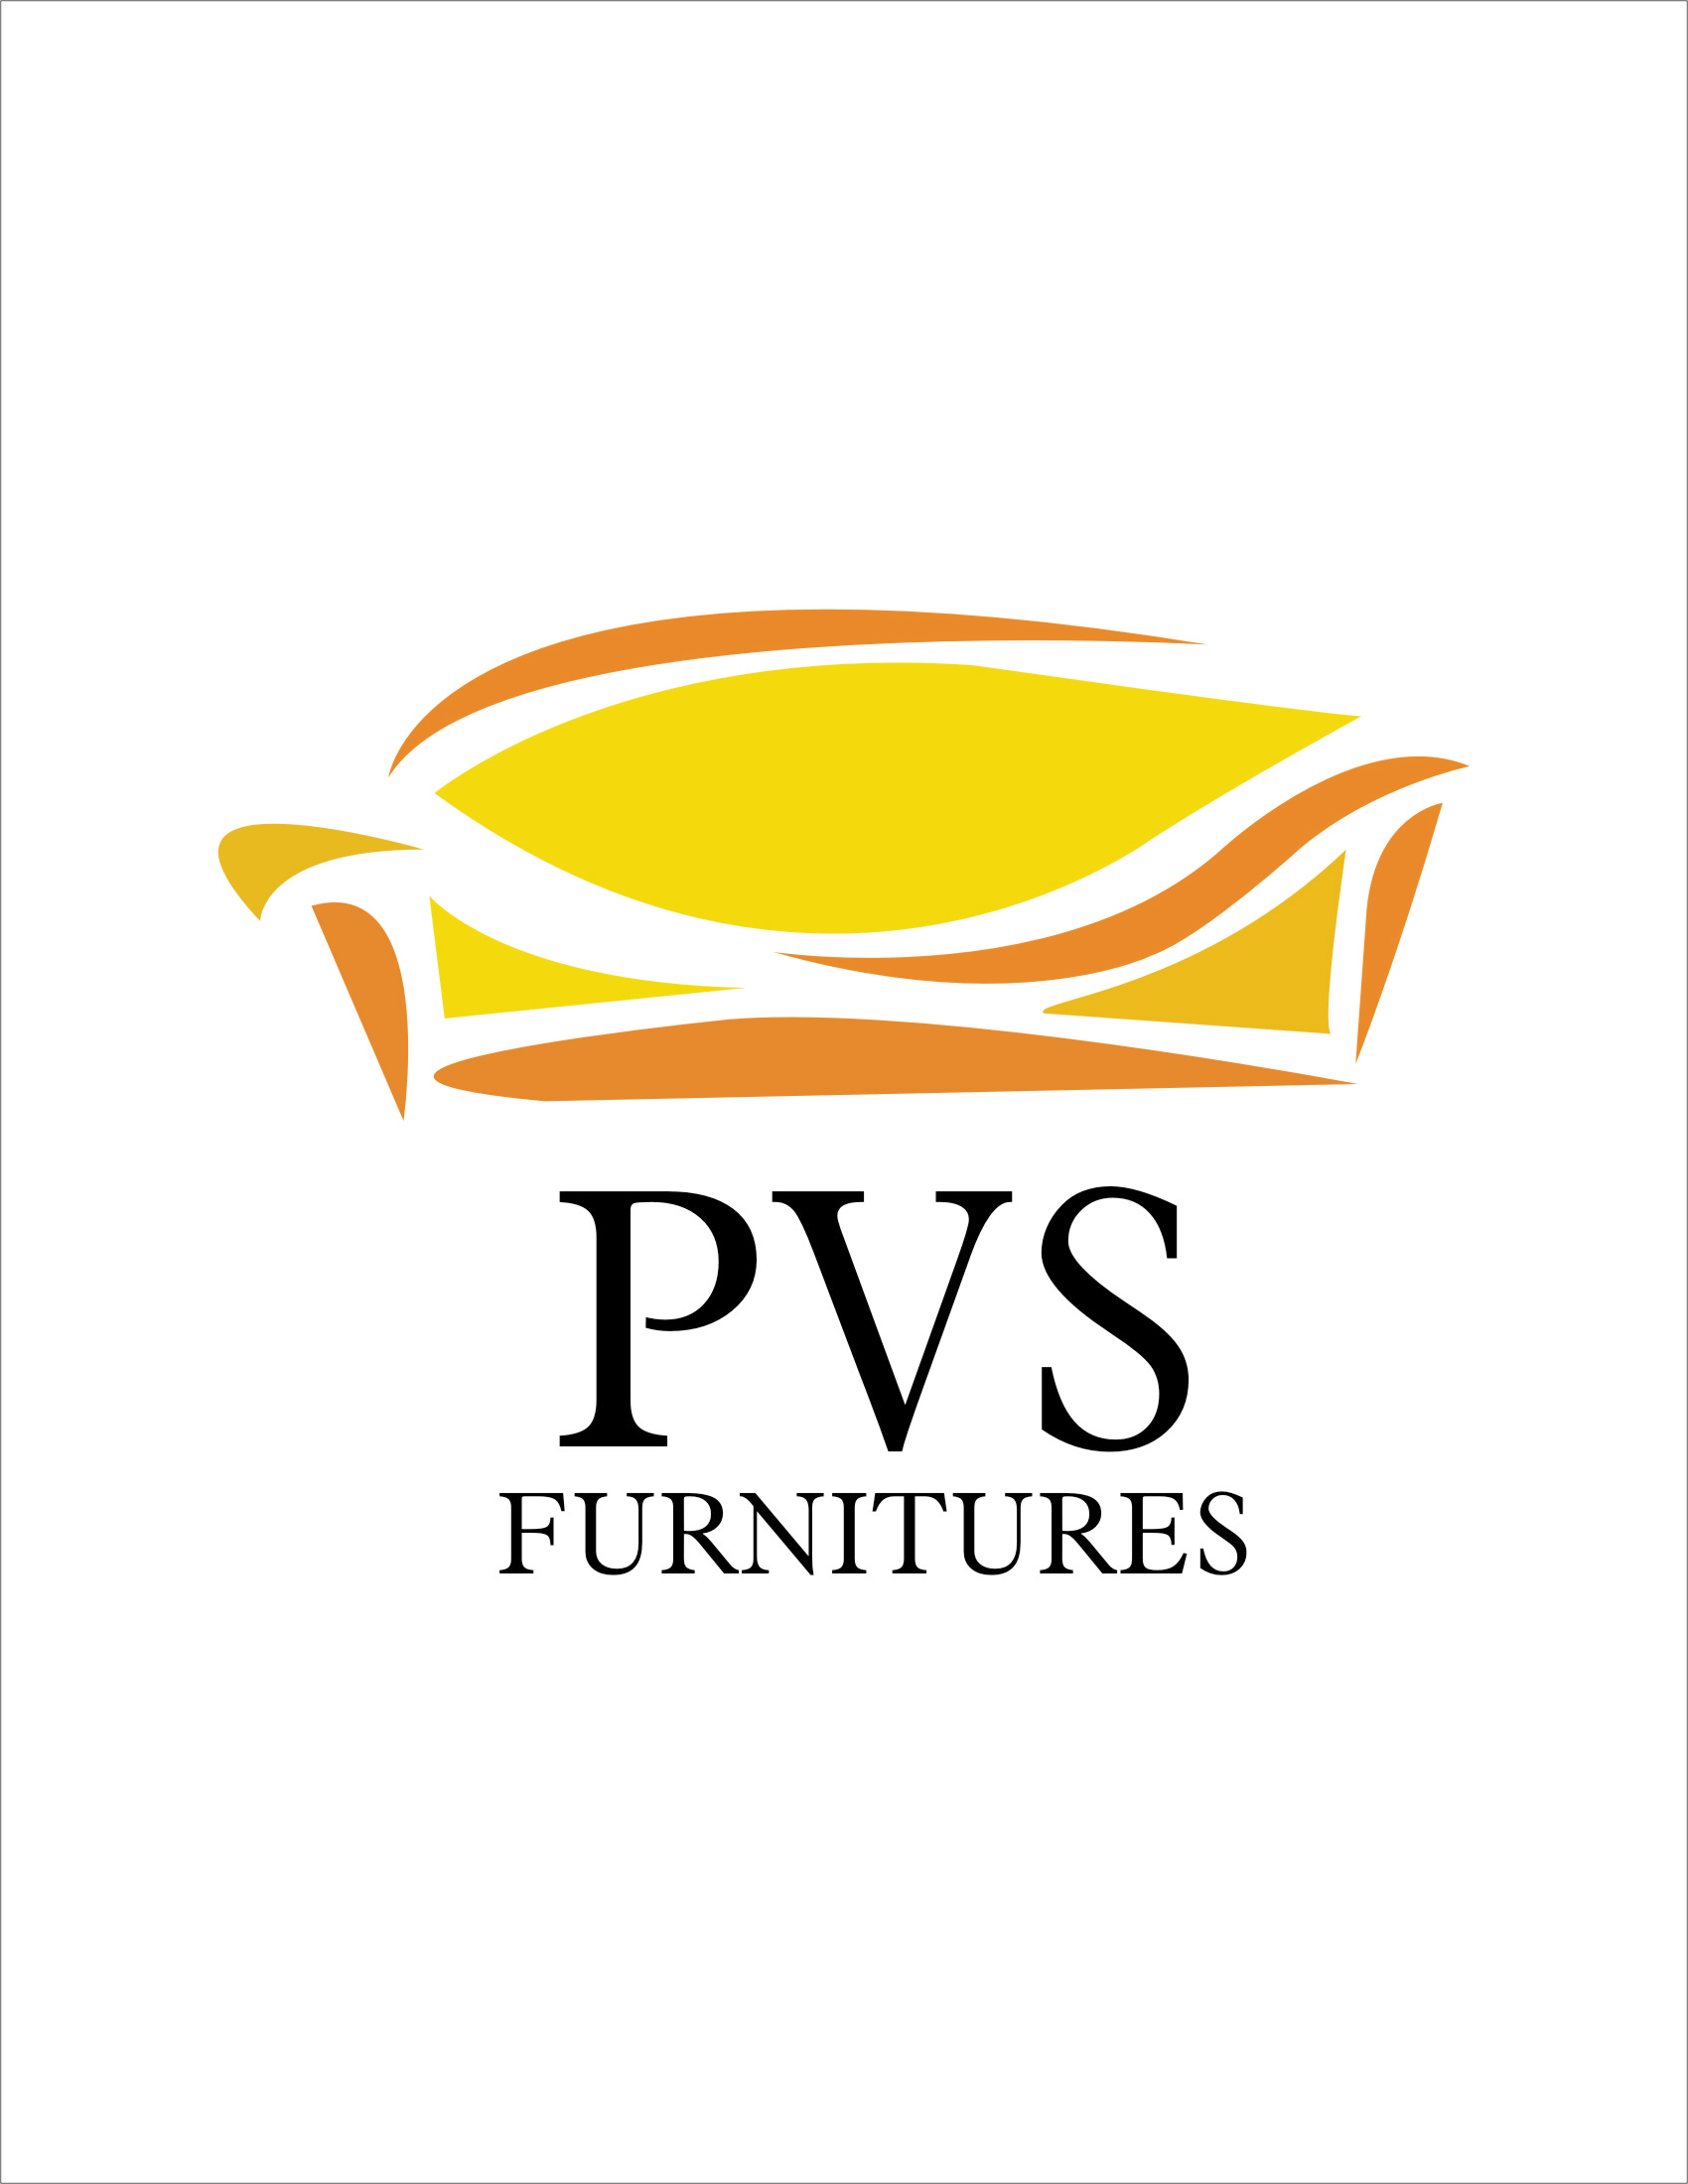 Furniture Logos  Home Decor Logos  LogoGarden